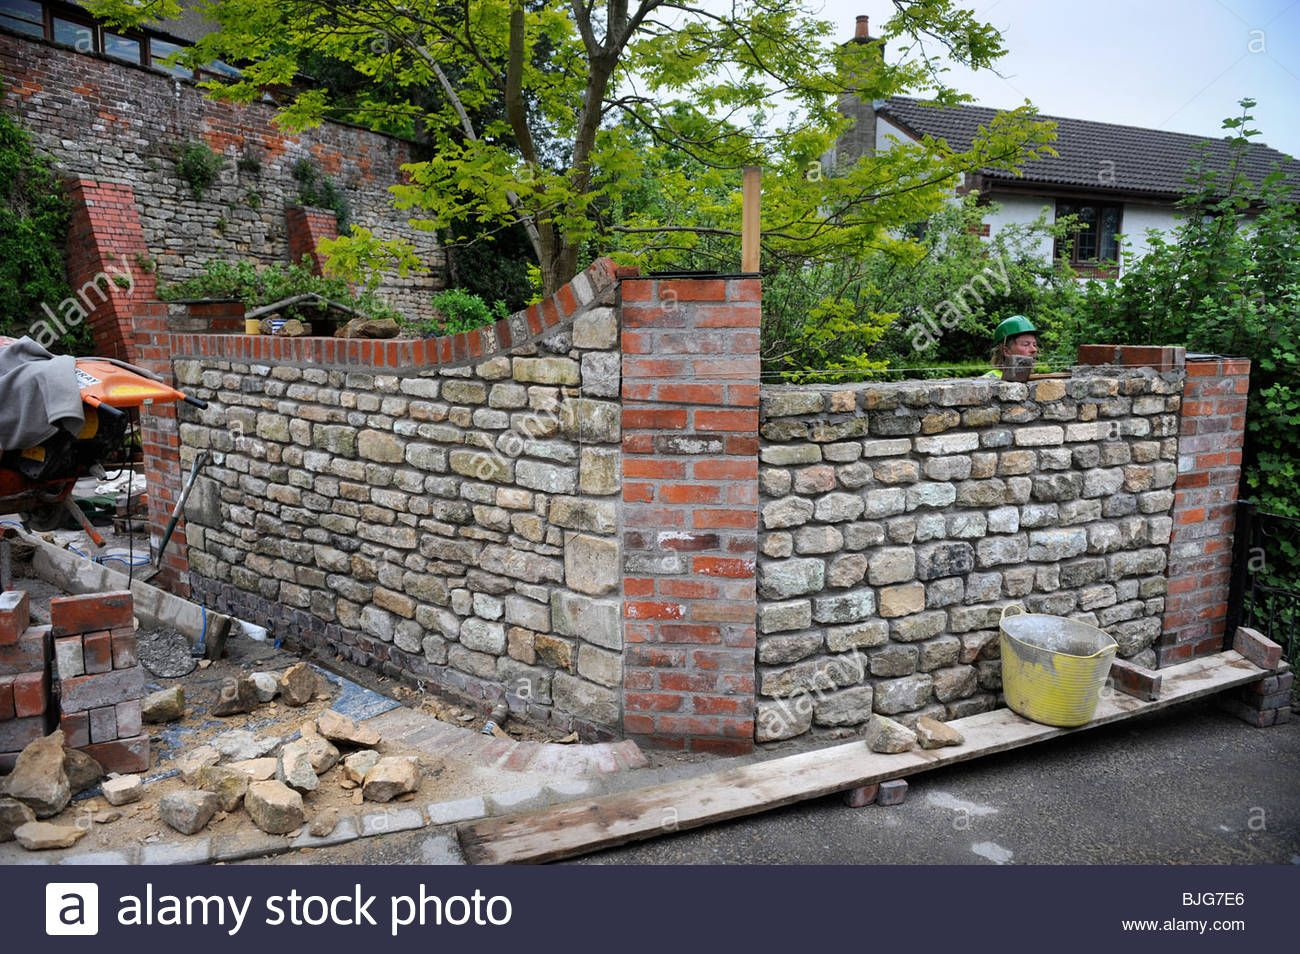 Download This Stock Image Building A Garden Wall With Cotswold Stone And Cement Mortar With Reclaimed Red Brick Pil Garden Wall Garden Images Garden Buildings